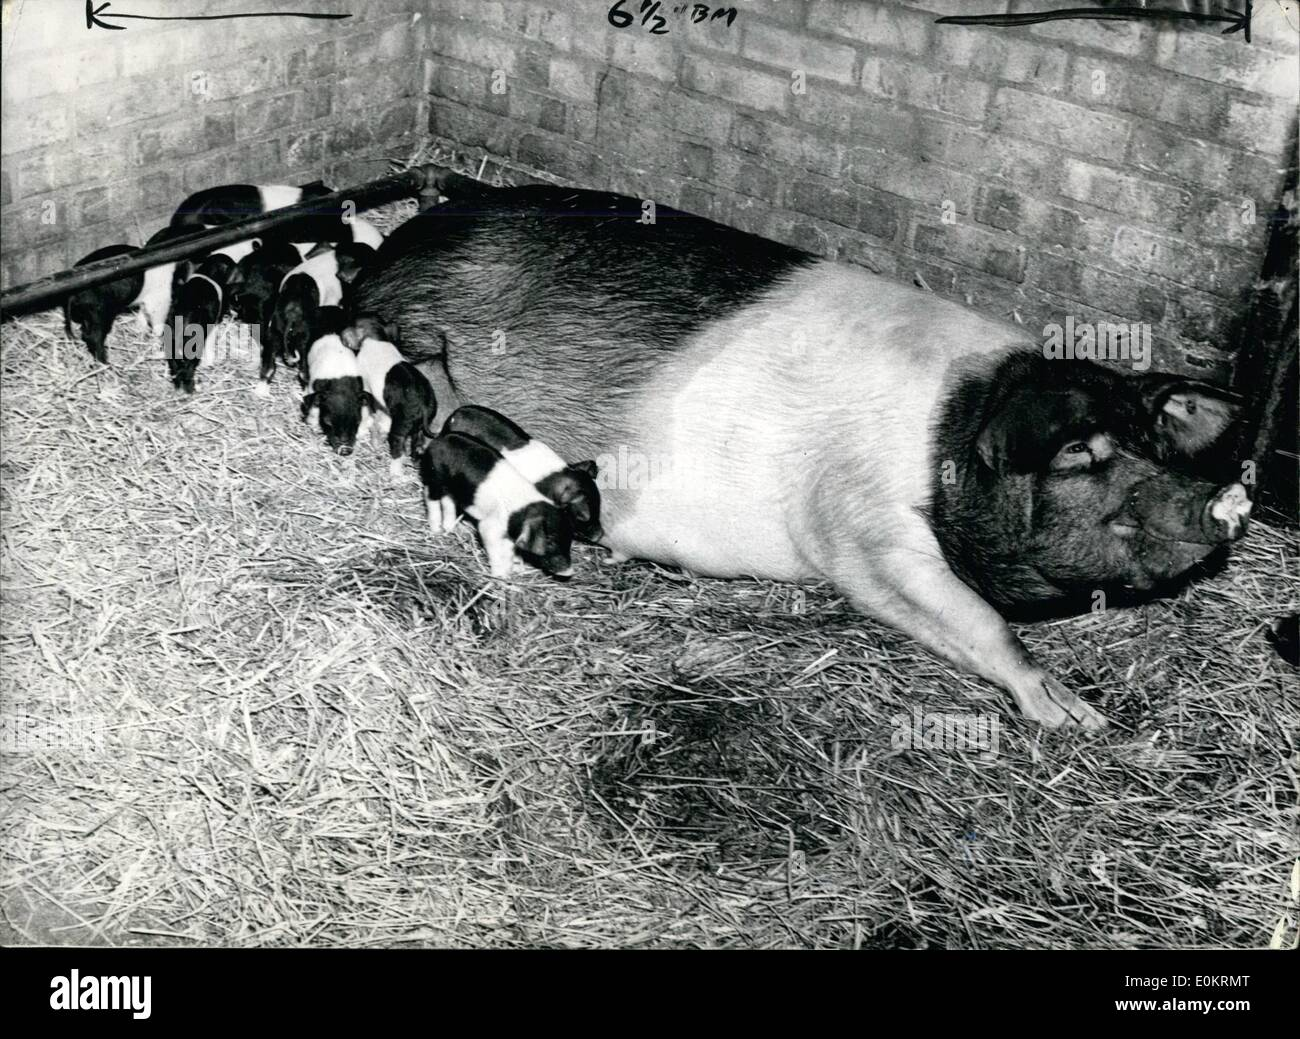 Apr. 04, 1949 - ''Pansy'' gives Birth to Twenty-Three Piflets..Ninety-Nine offspring in four years: ''Pansy'' 28 stens Essex sow on the farm of Mr.John Butler, of Stoke-by-Nayland, near Ipswich, on Saturday gave birth to a reach British litter of 23 piglets.. In under four years Pansy has mothered 99 offspring in seven litters - two of them of 19 each. Normal litter is about 12-of which only eight or nine can be successfully reared by the mother. Pansy (her full name is Chilton Pansy 32nd.) is bringing up 14 of her latest family. - Stock Image